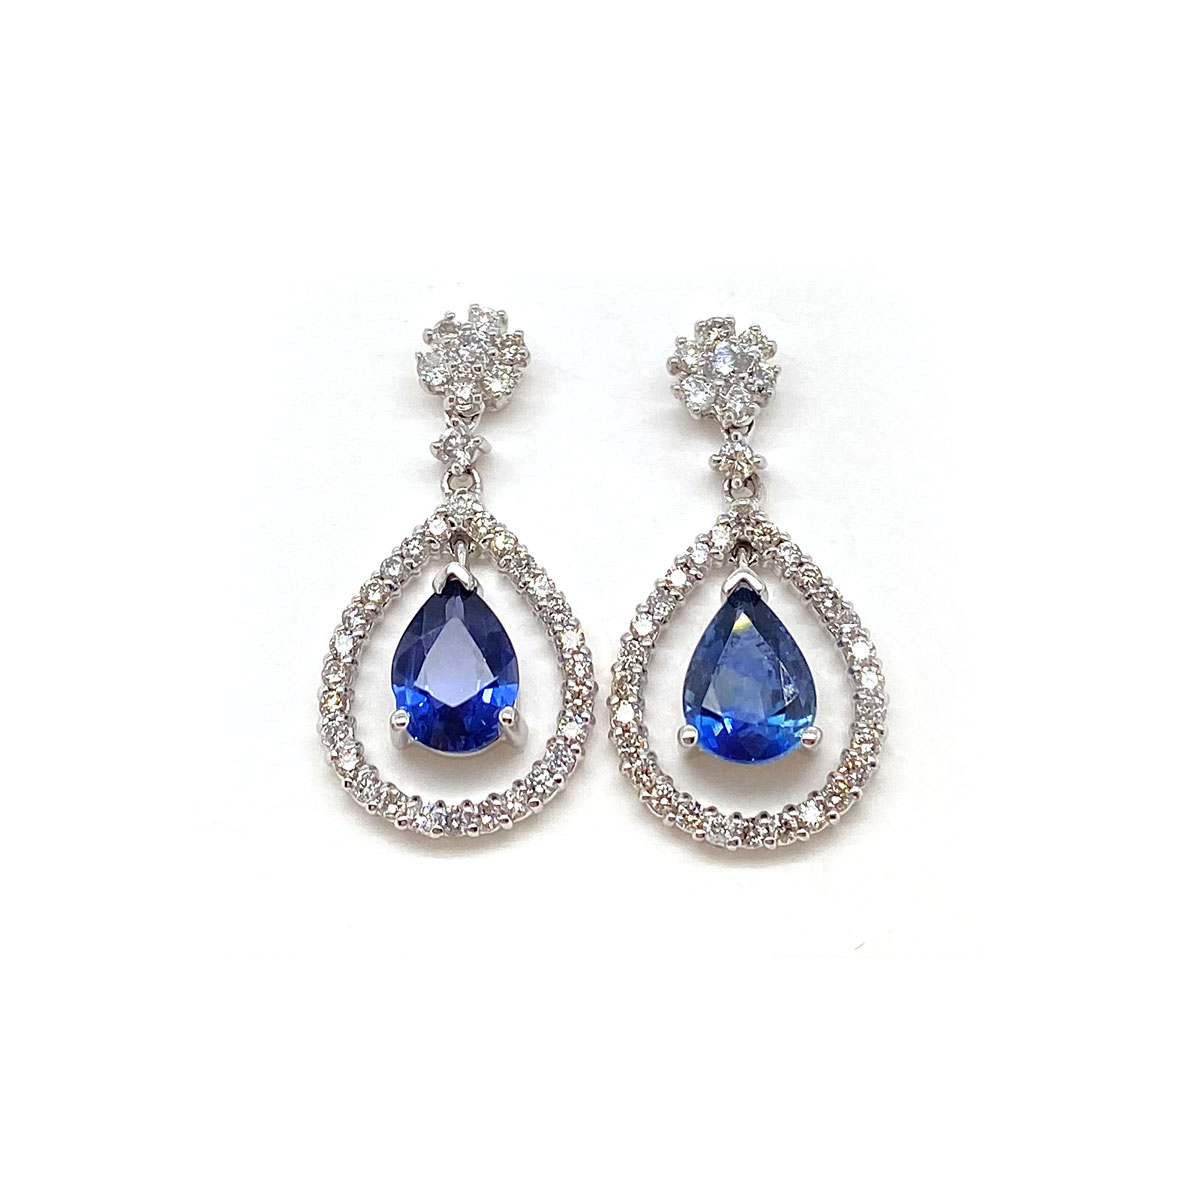 14 Karat White Gold Pear Shaped Blue Topaz and Diamond Dangle Earrings